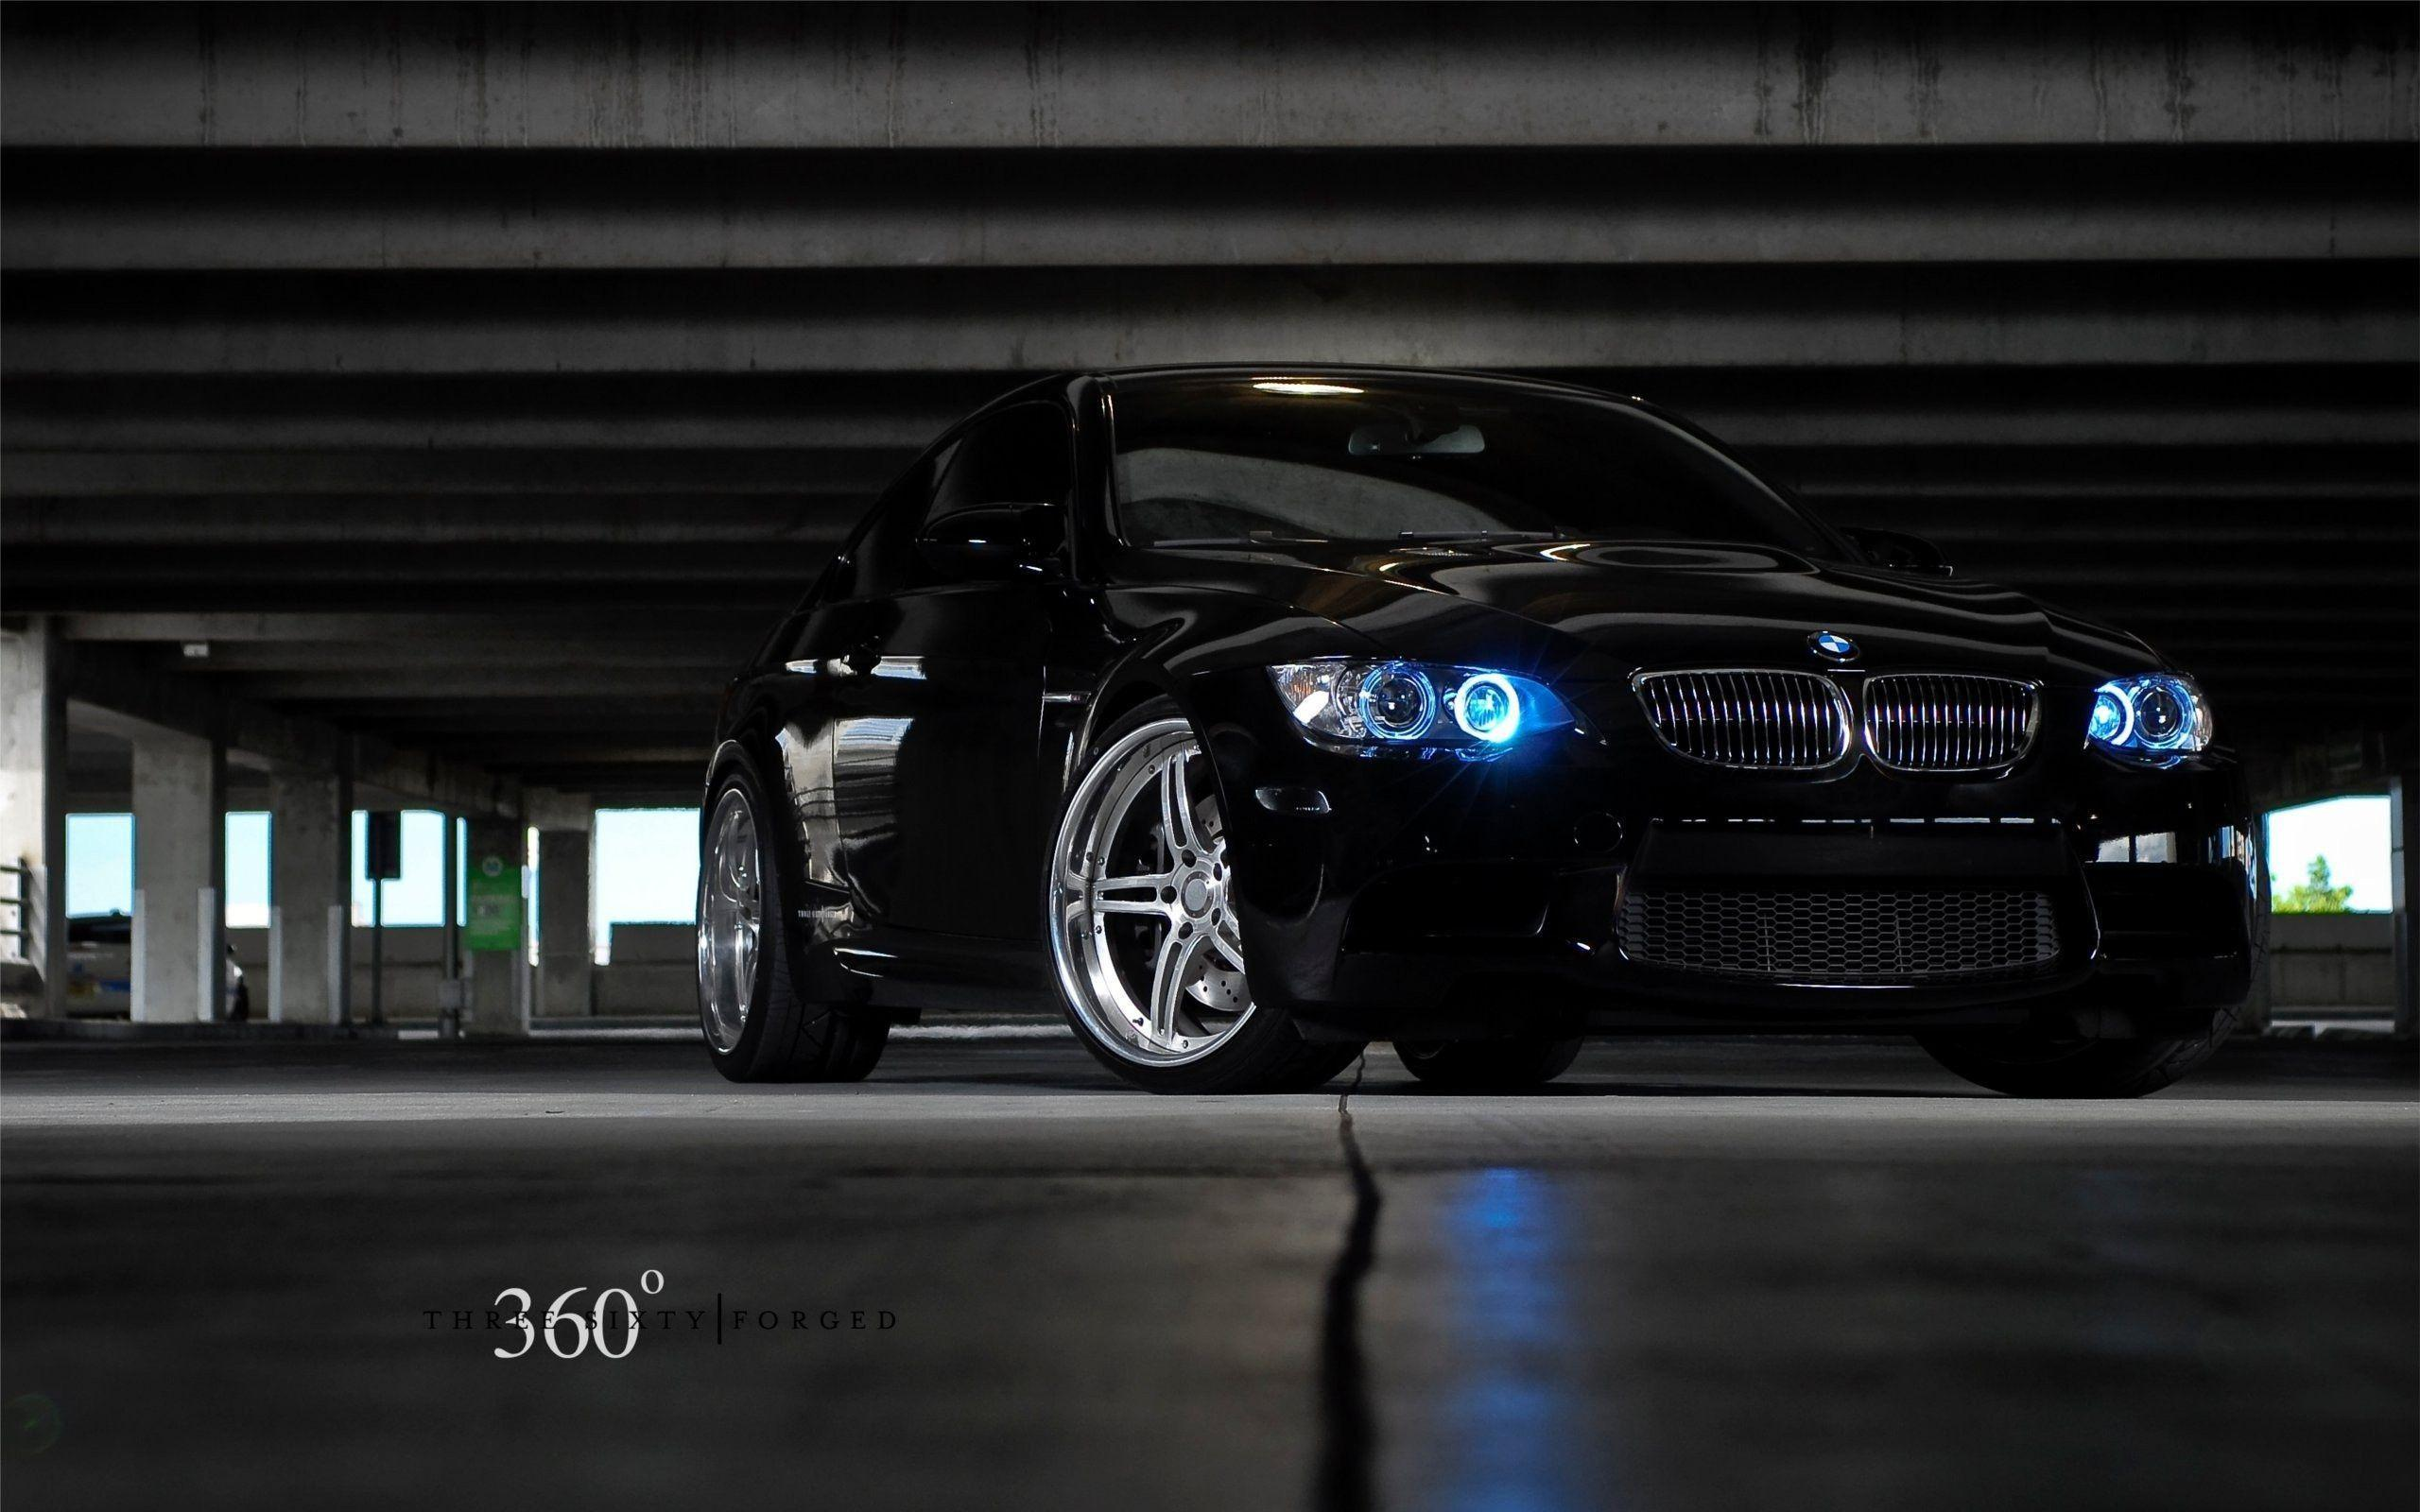 Black Bmw Wallpapers Wallpaper Cave